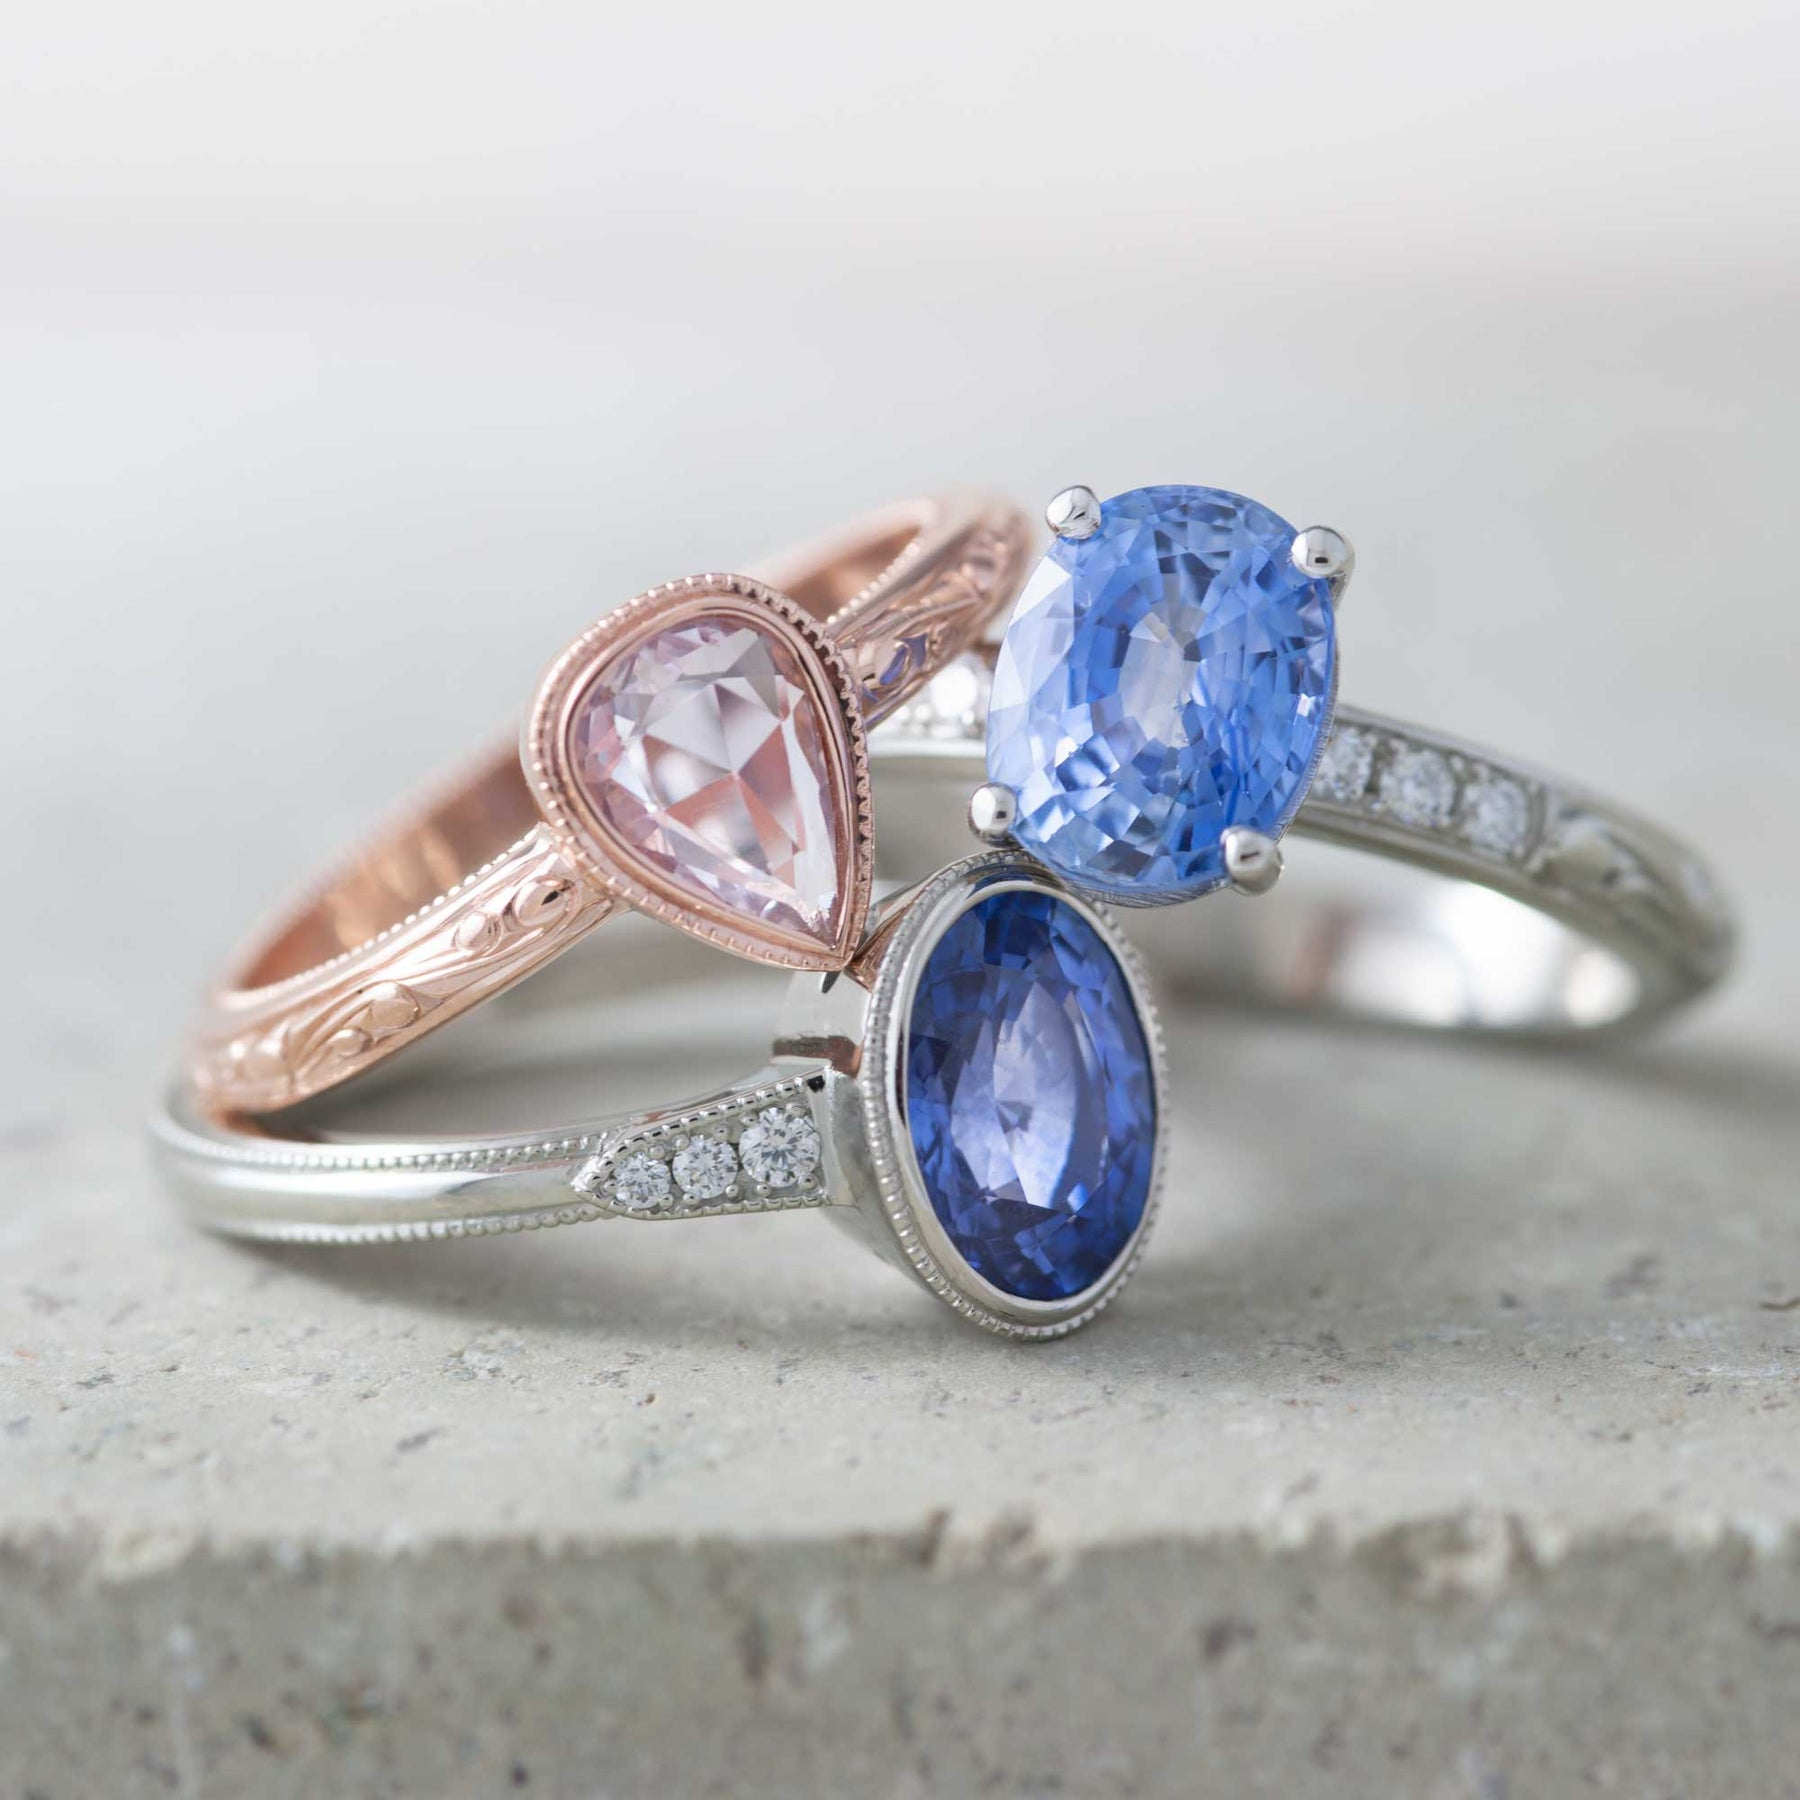 Sapphires! Fresh from the Workshop